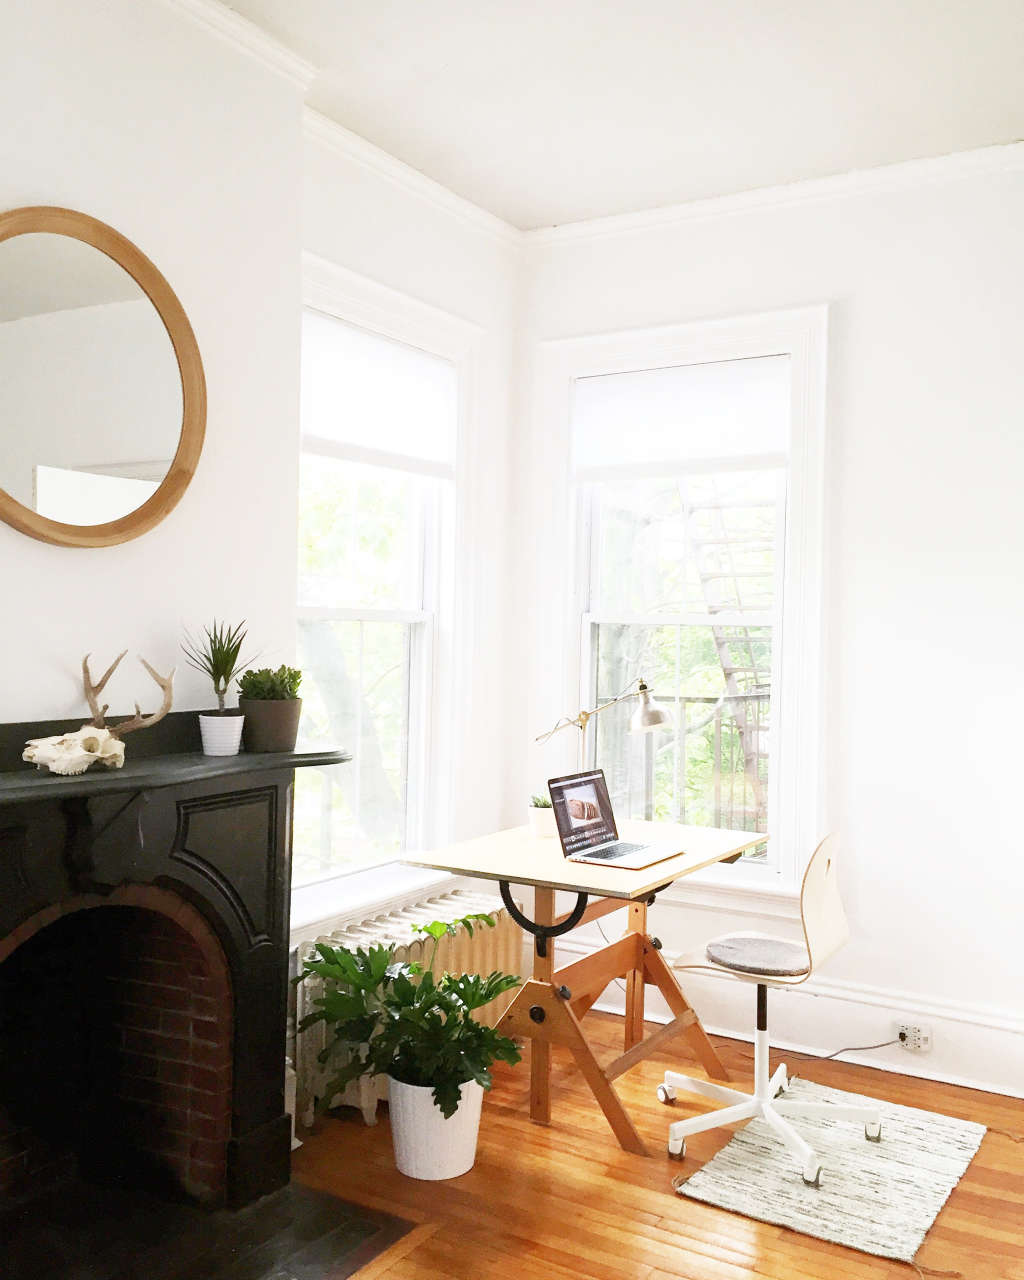 Get the Look: Humble & Clean Scandinavian-Inspired Style